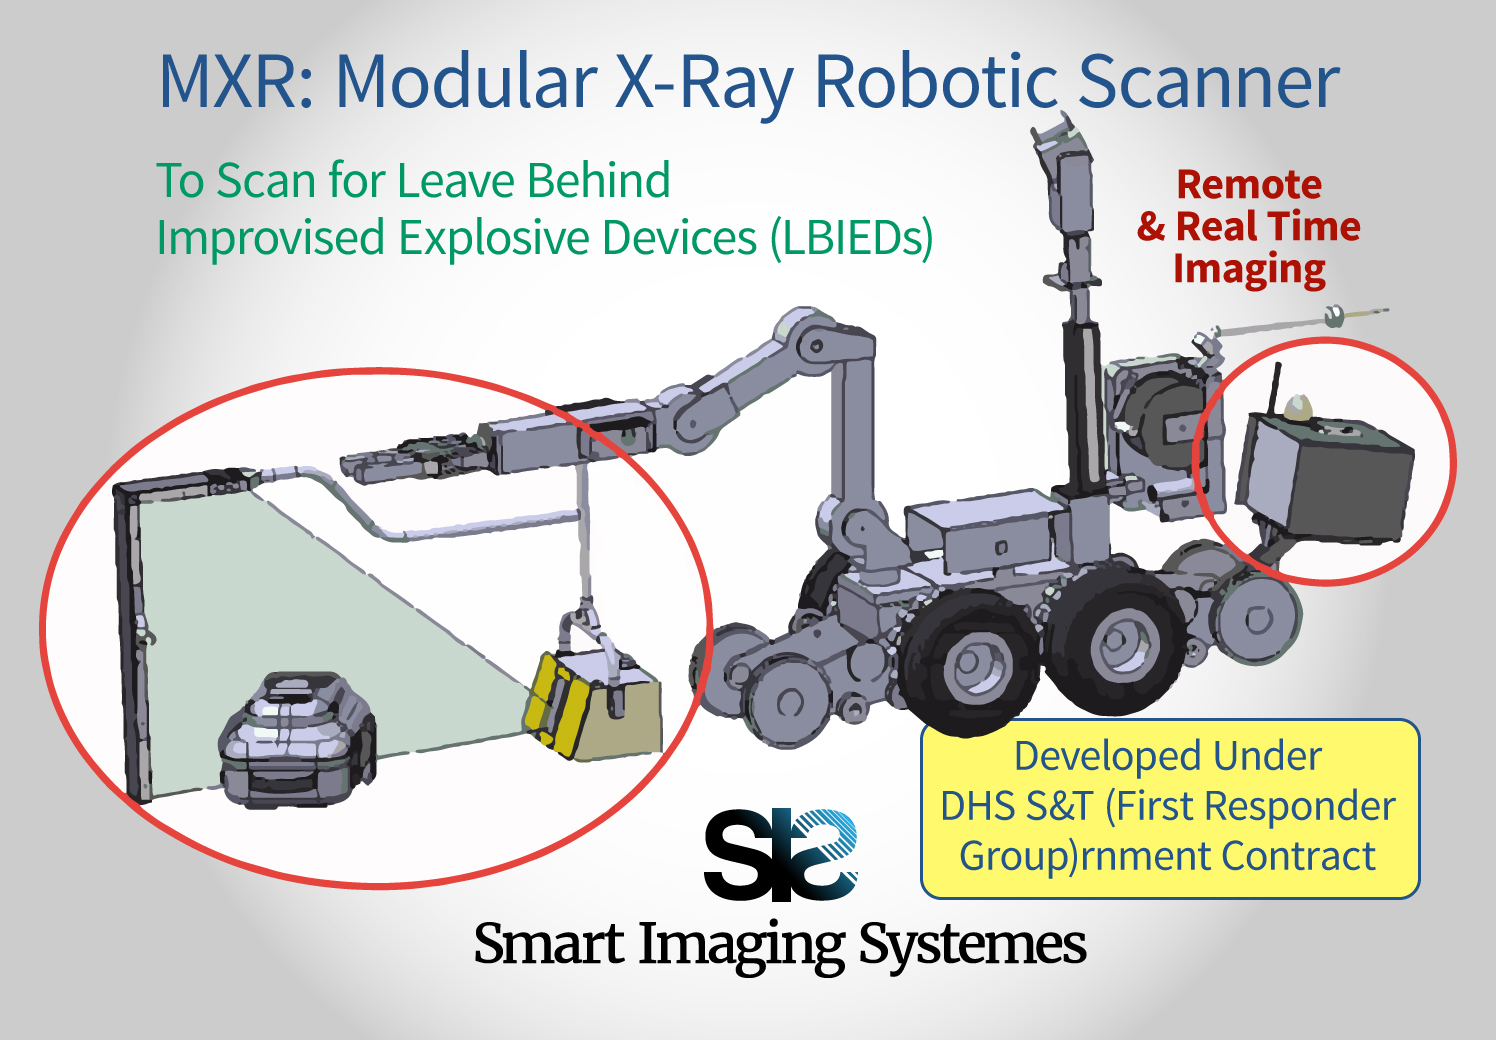 MXR: Modular X-Ray Robotic Scanner